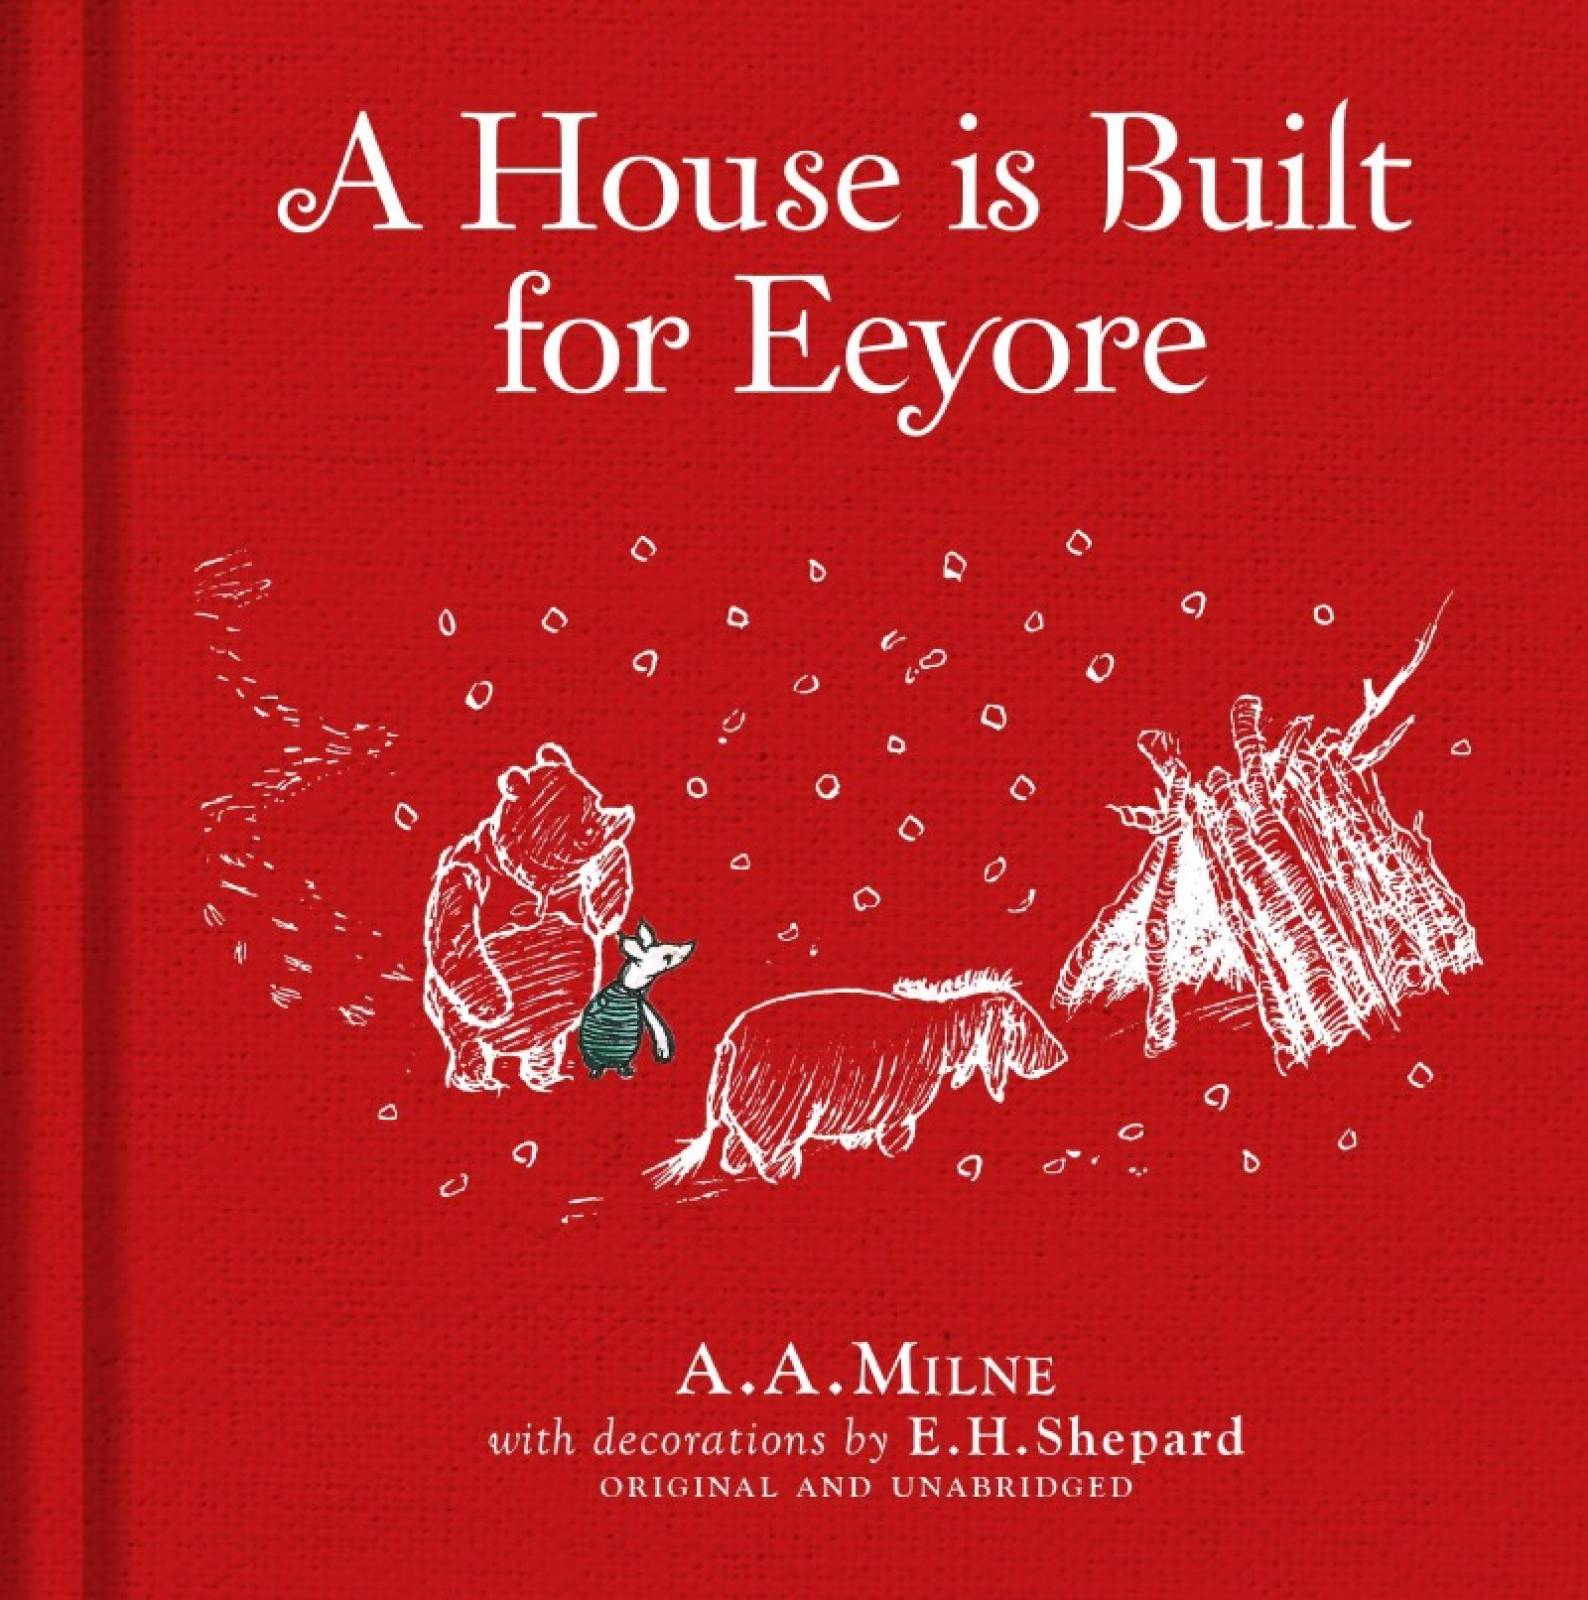 Winnie-the-Pooh: A House is Built for Eeyore - Hardback Book